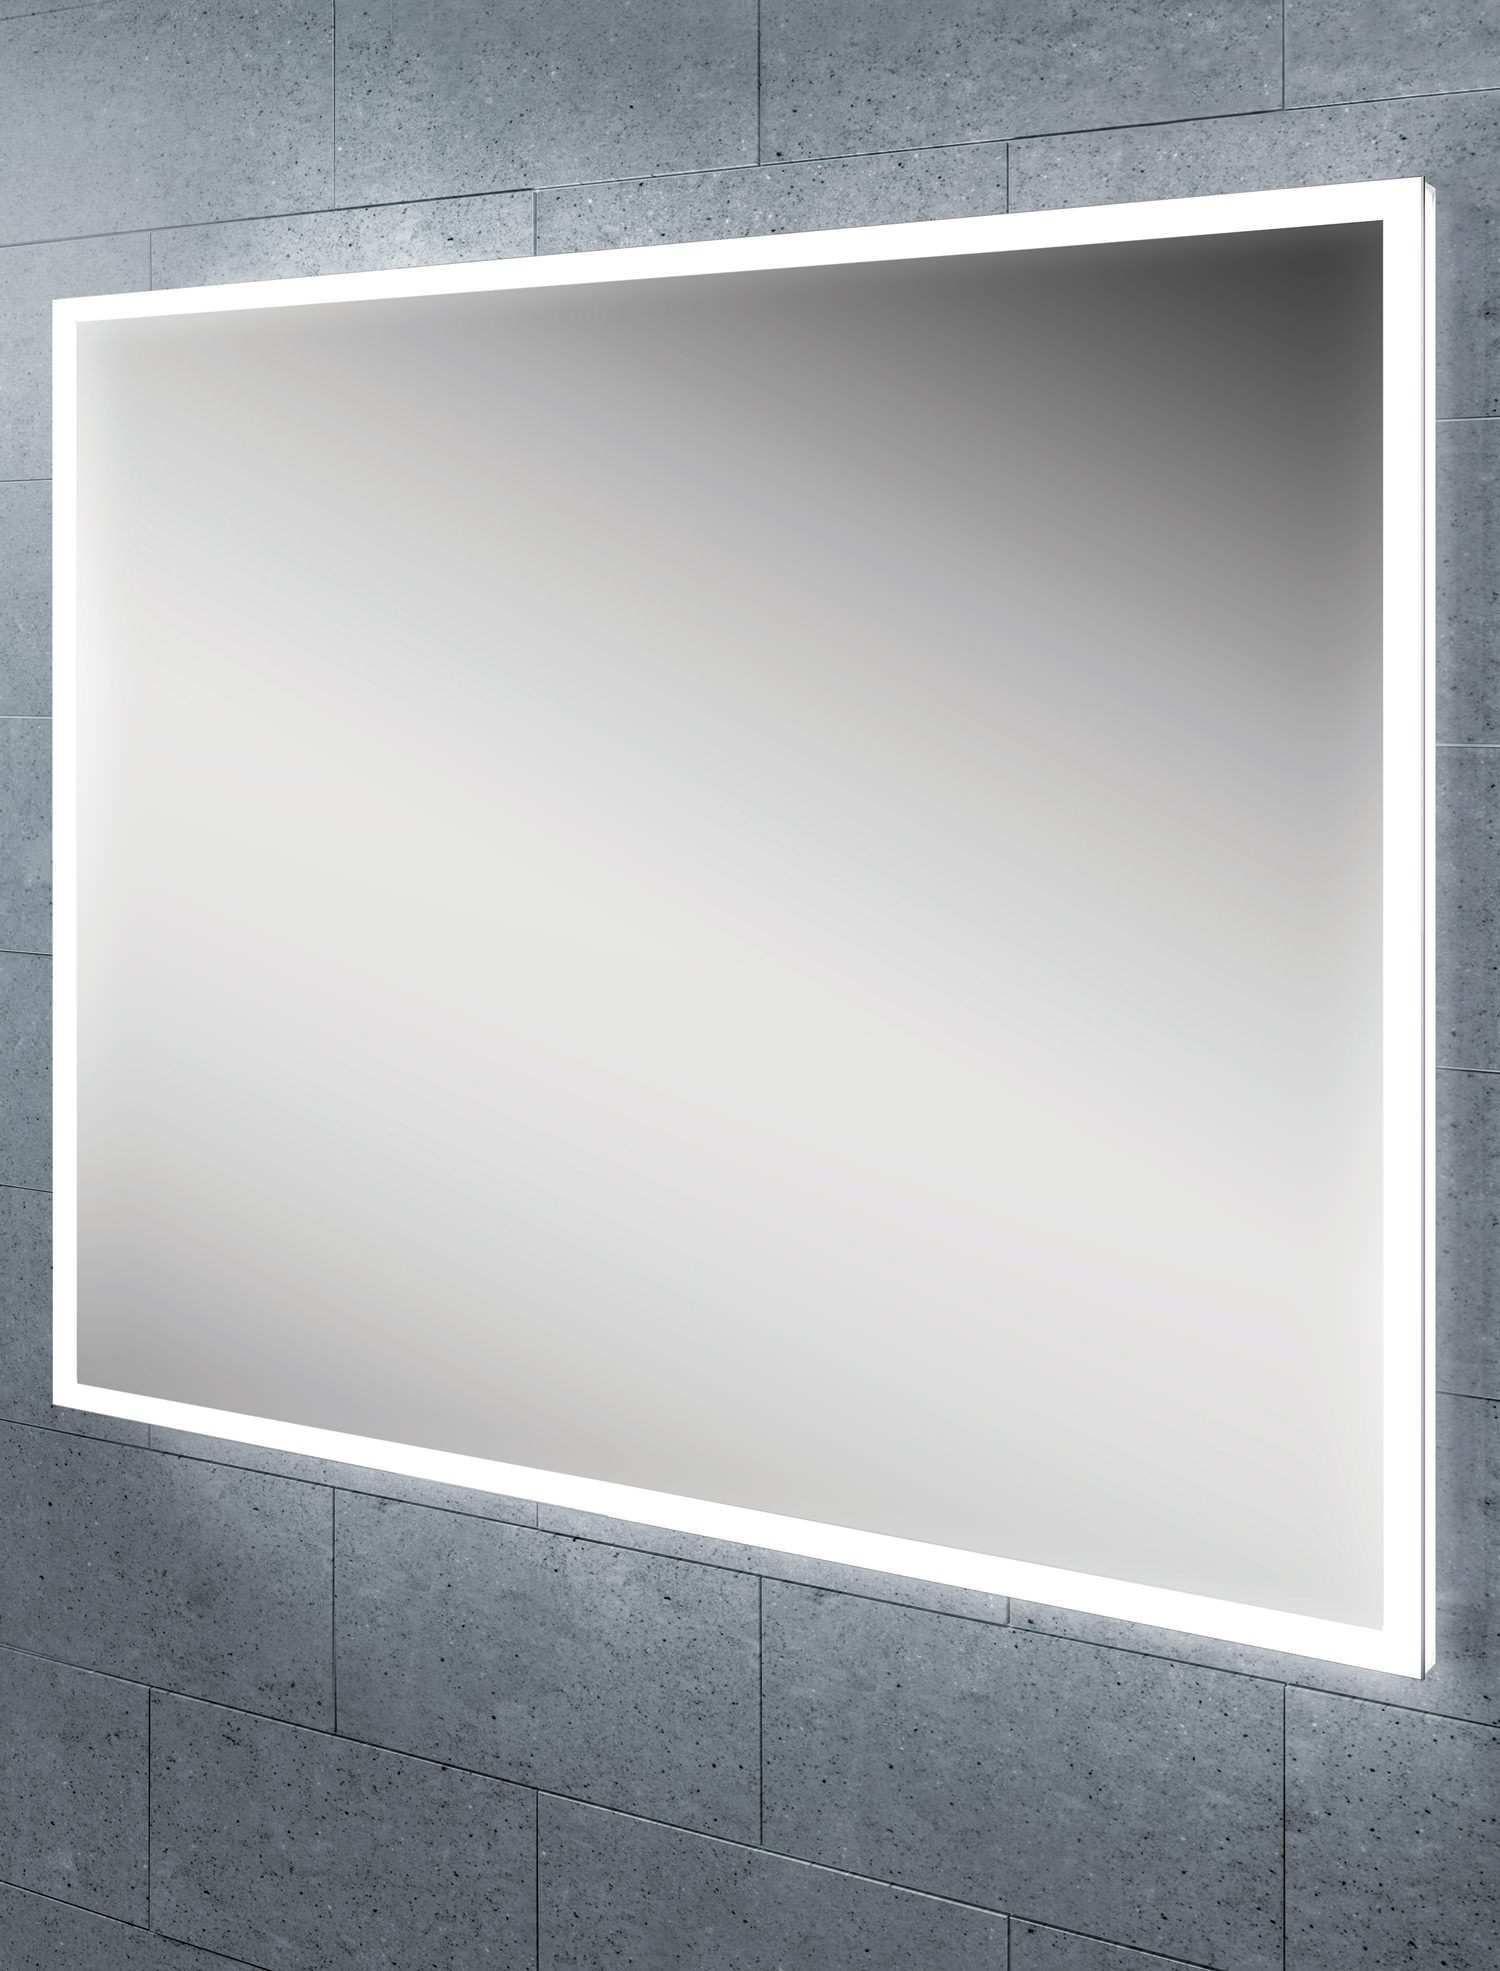 Built In Led Bathroom Mirrors Innovation in Your Bathroom